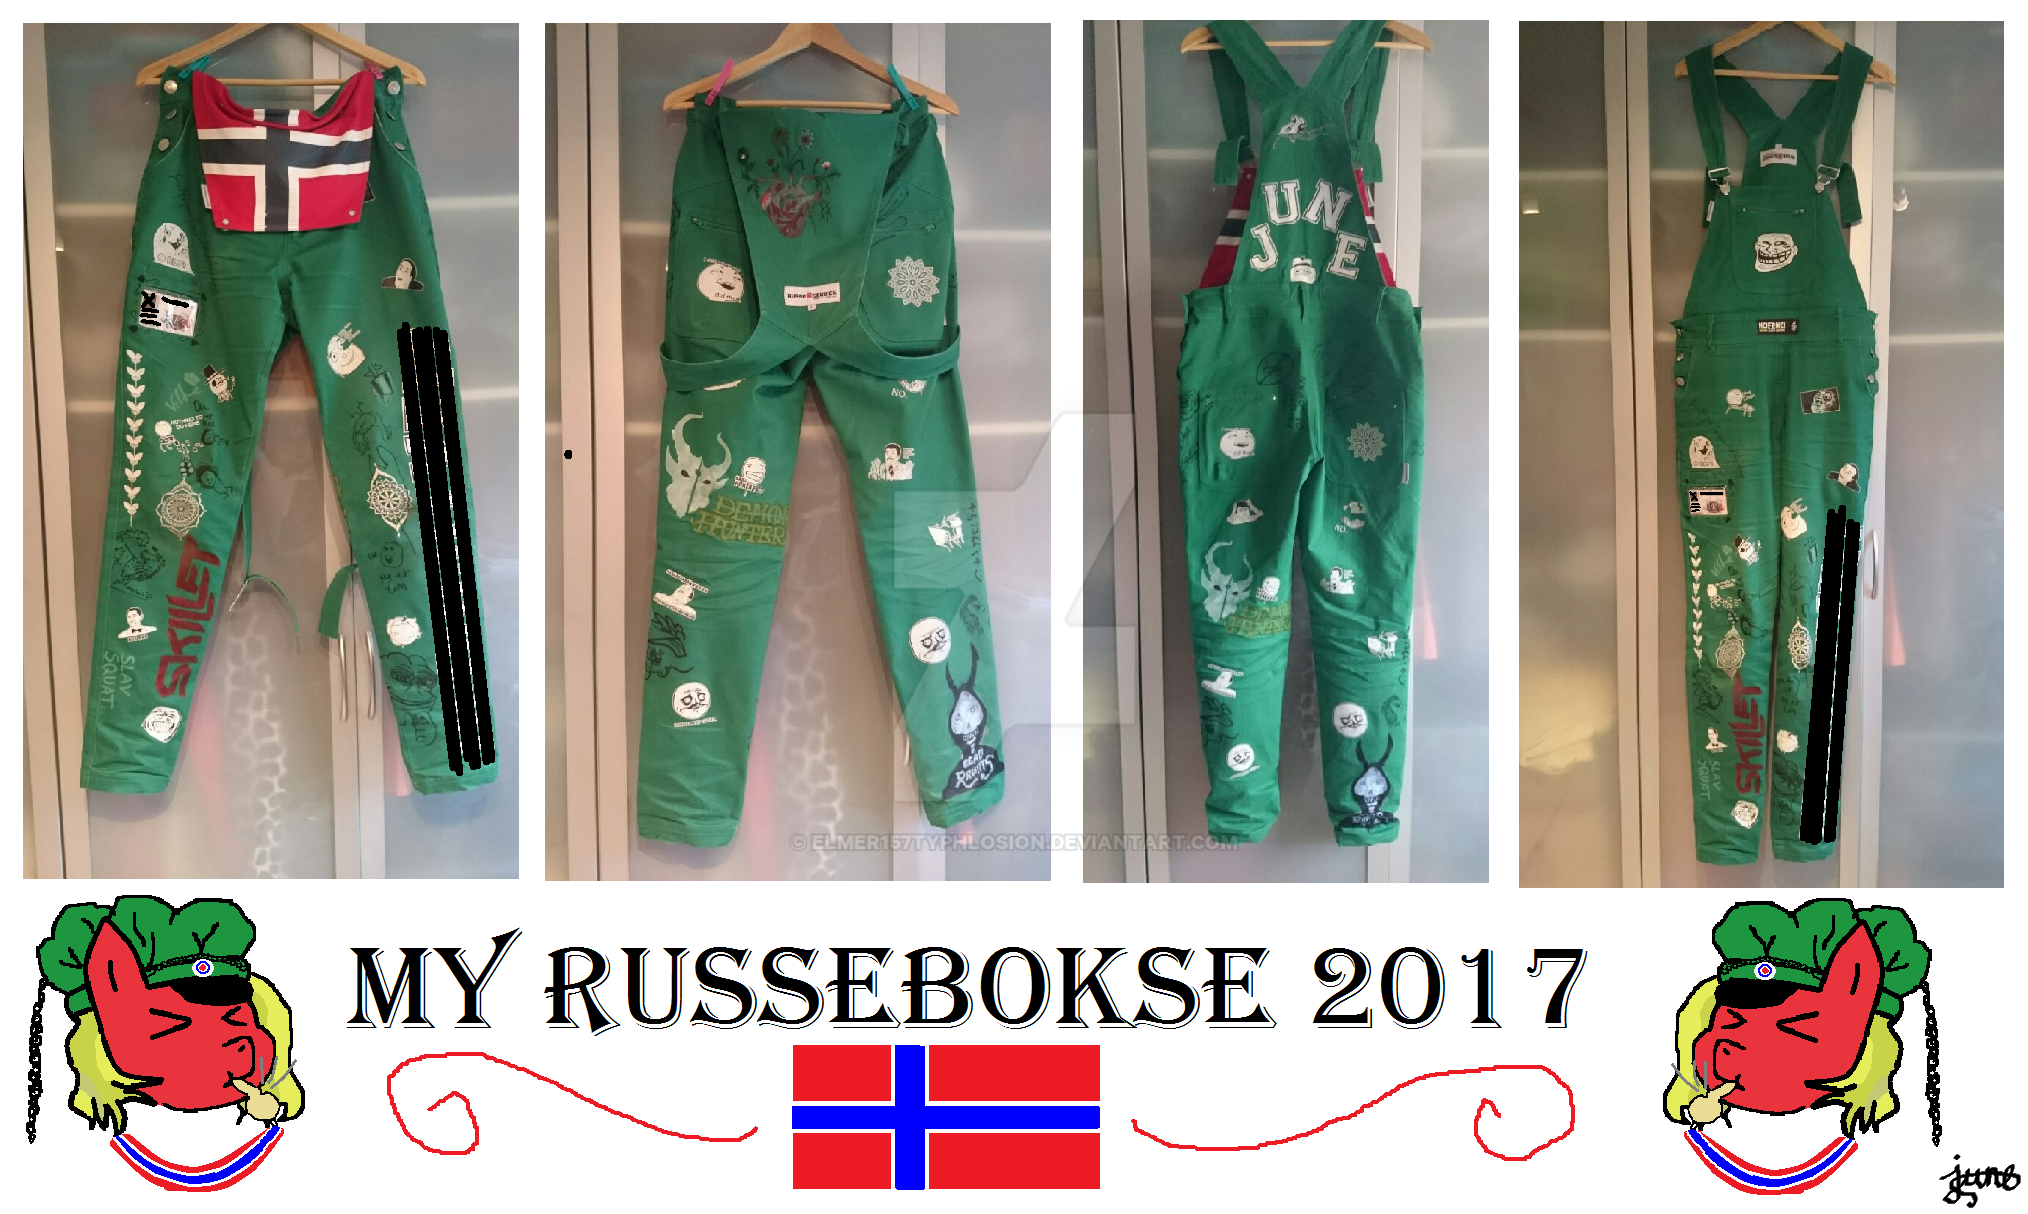 My Russebokse 2017 (Info in description) by Elmer157Typhlosion